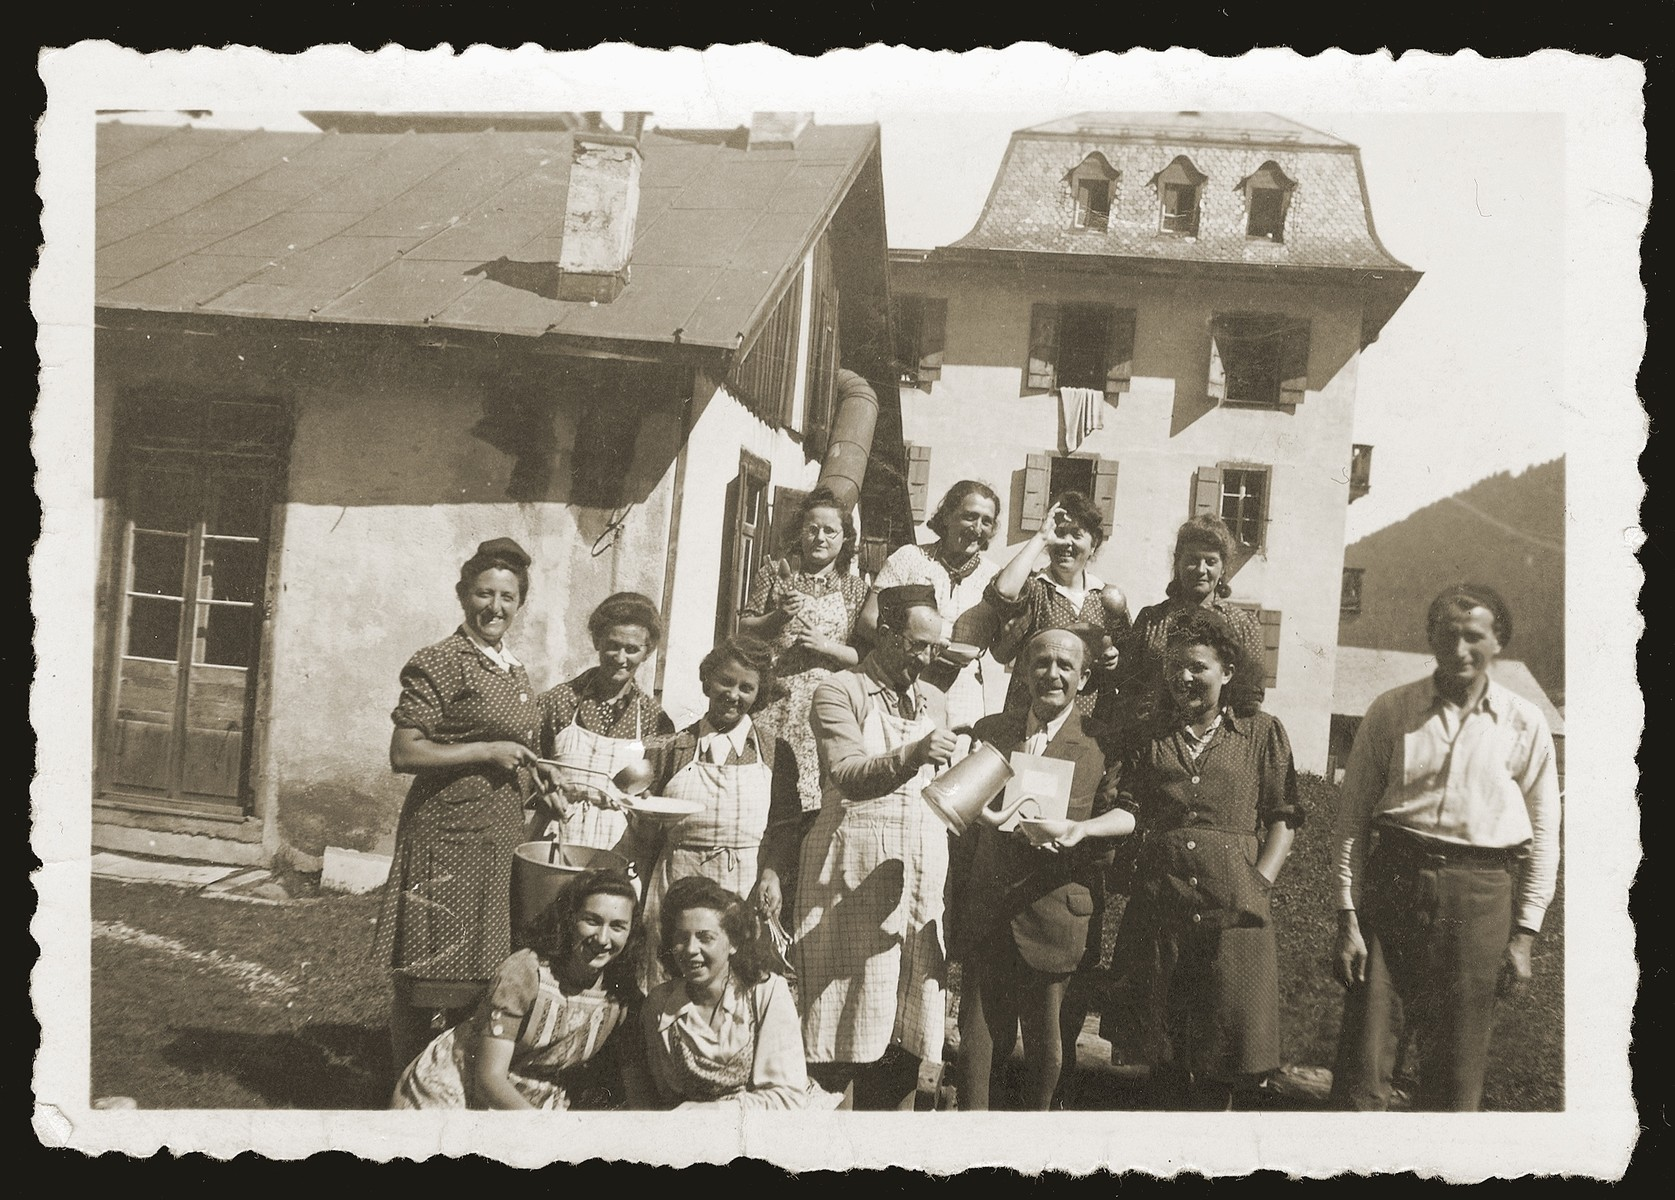 The kitchen staff of the Morgins family camp poses outside the main building.  Kasiel Aba Johles is seen in the center pouring a liquid.